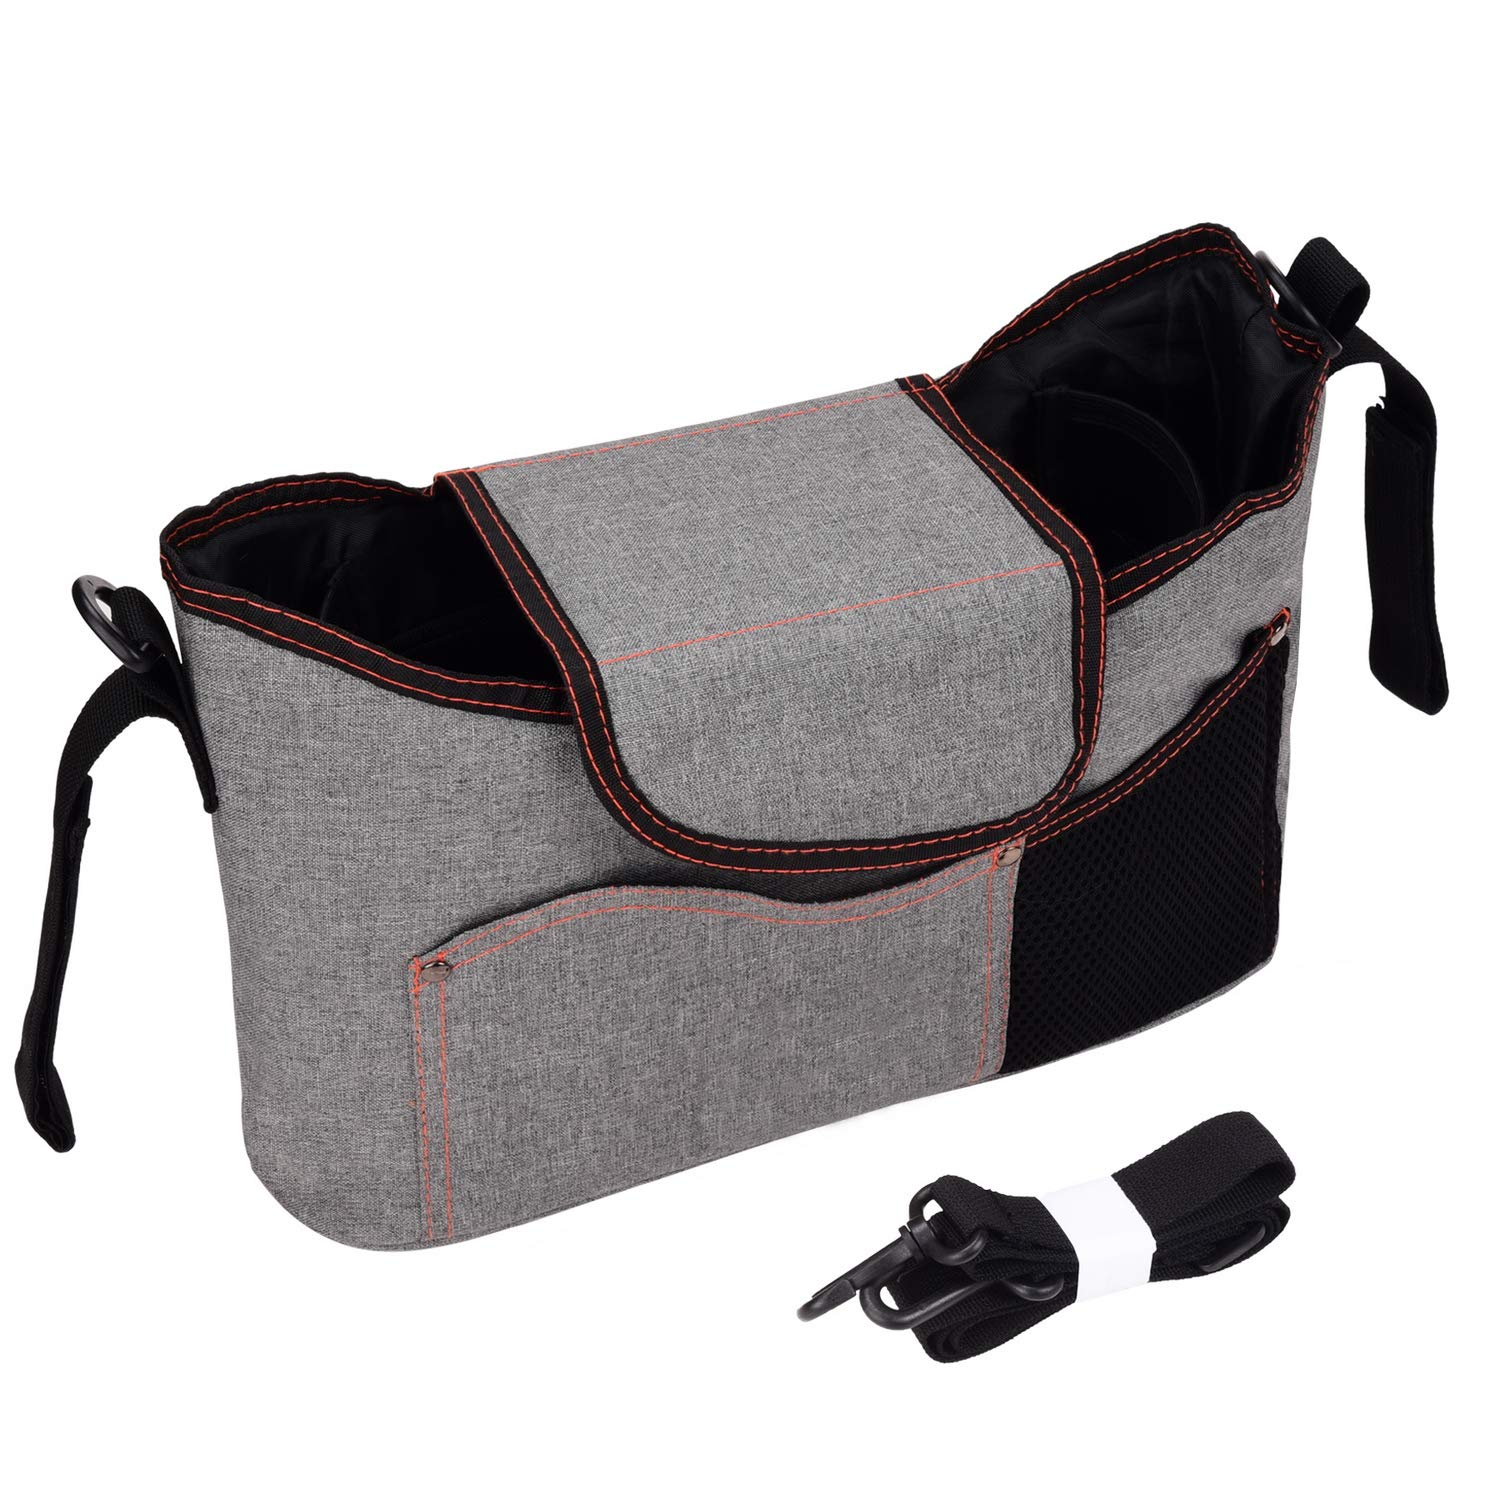 Baby Stroller Diaper Bag Pram Organizer with Cup Holders and Shoulder Strap for Parents by SKYNEW, Light Grey